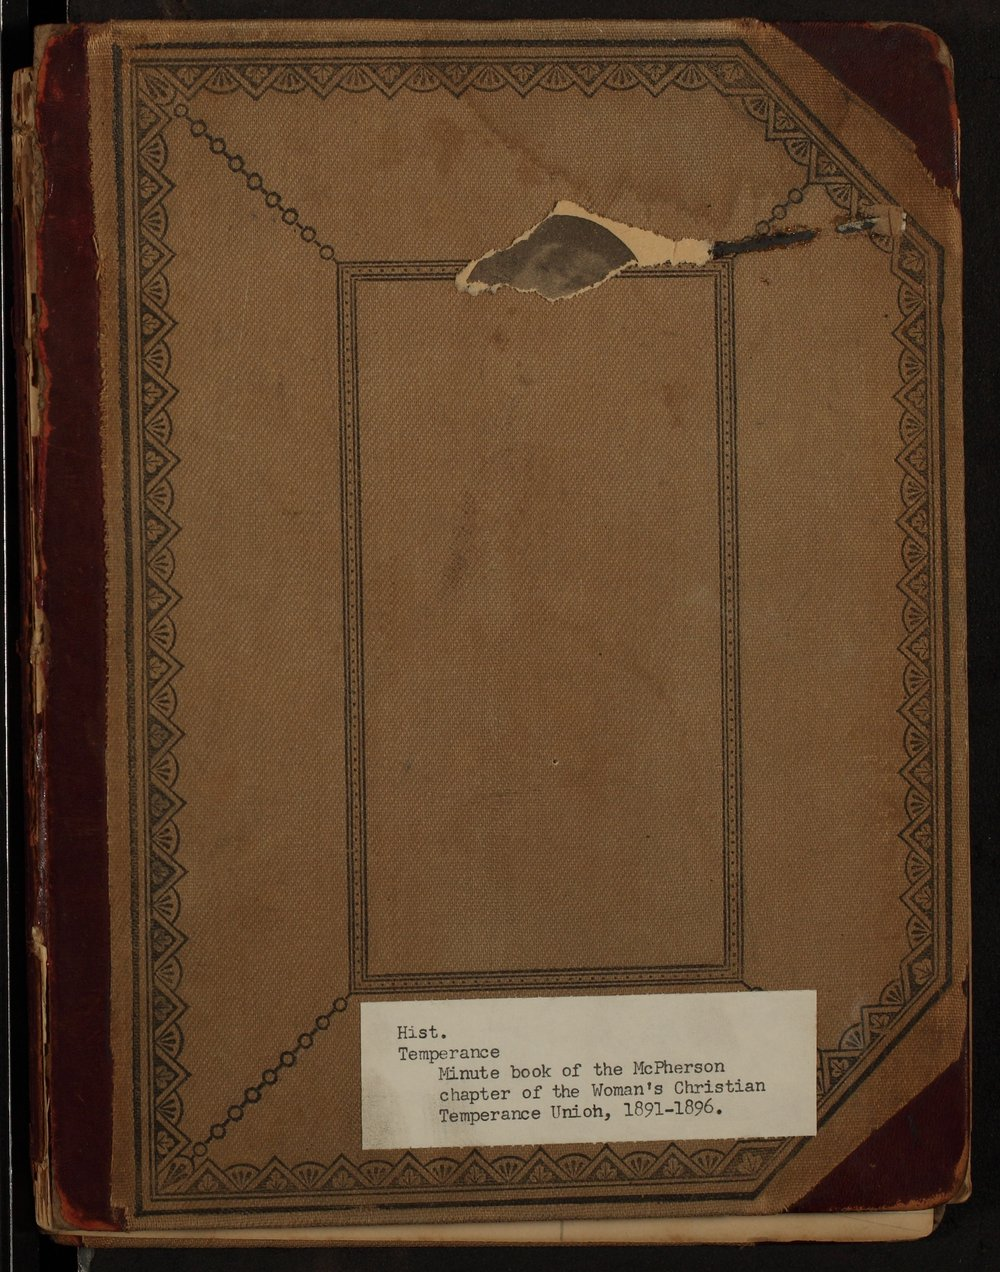 Minutes of the McPherson Chapter of the Woman's Christian Temperance Union - Front Cover